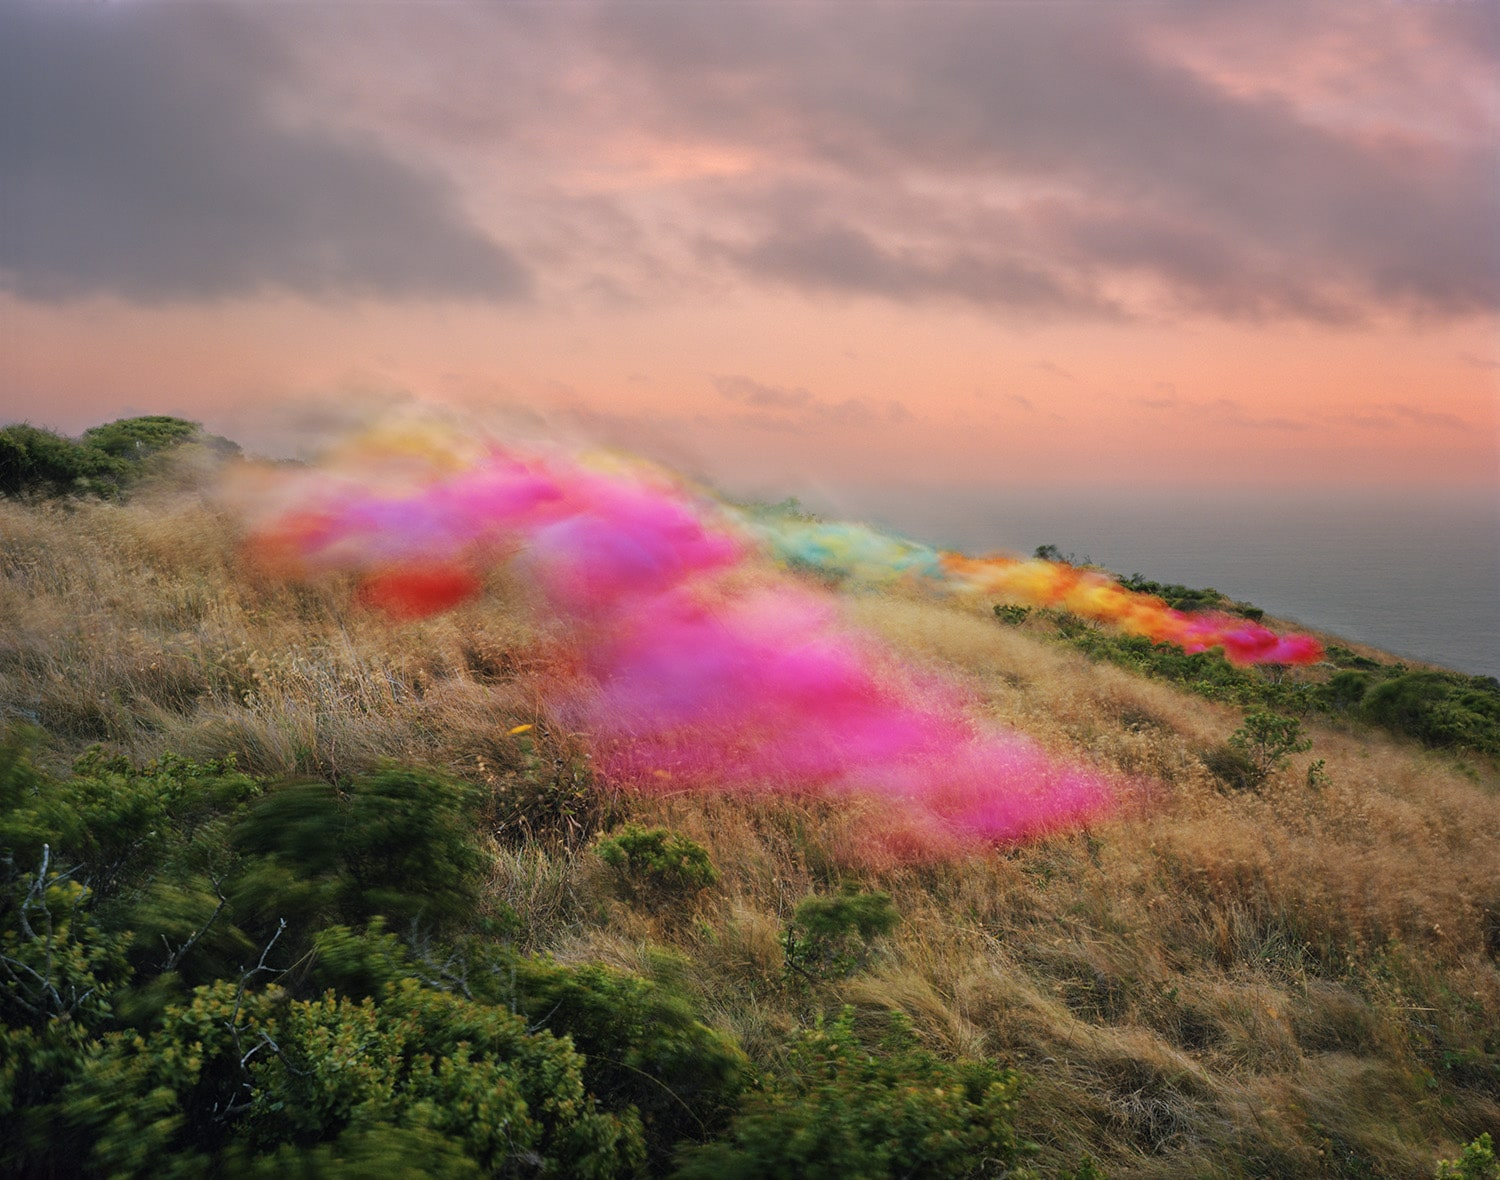 Photographs of Tulle Floating Over Landscapes by Thomas Jackson